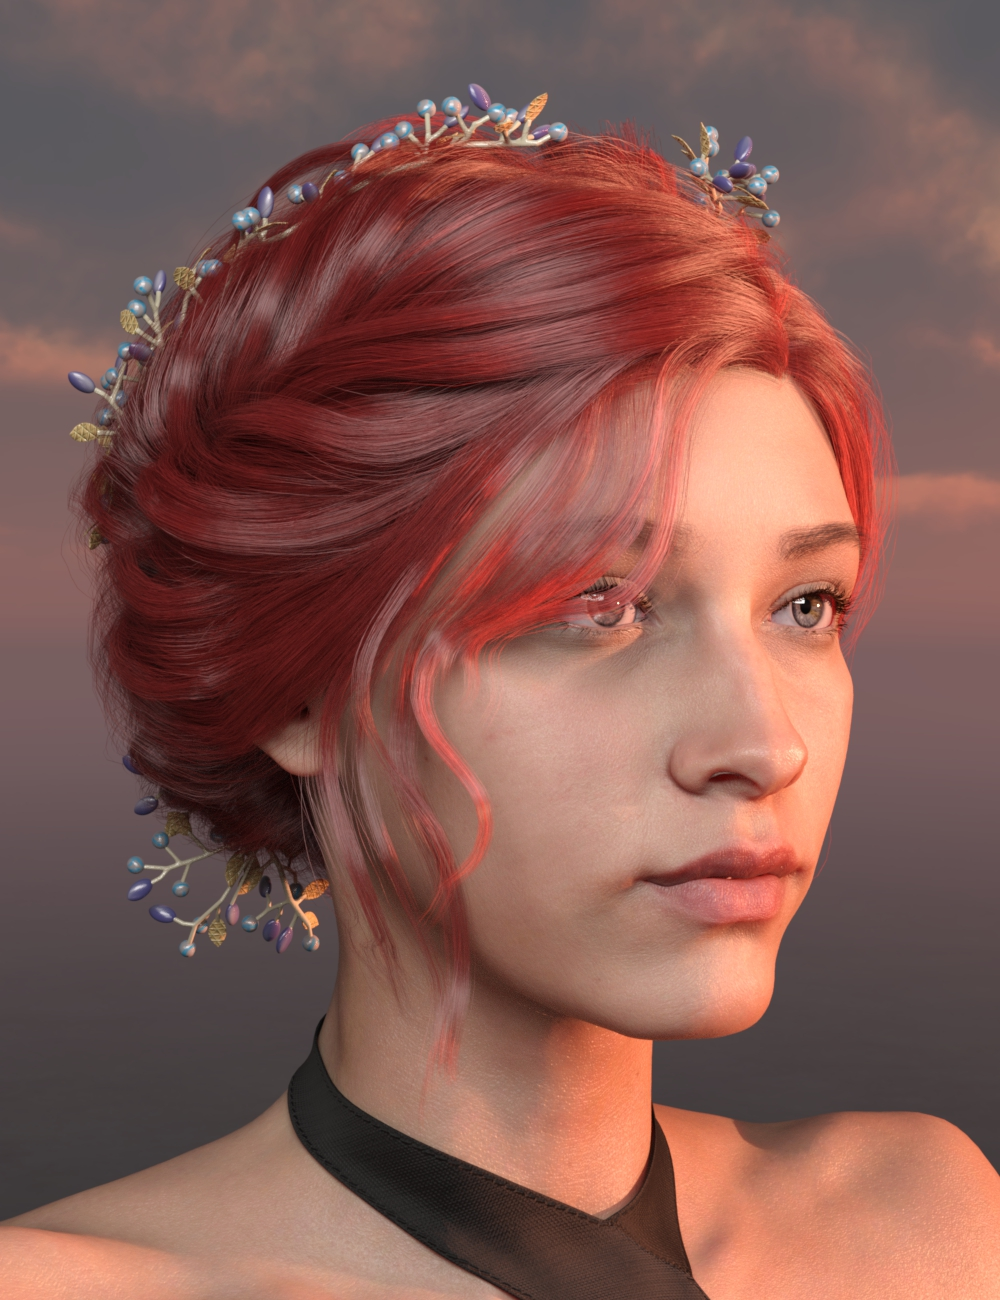 Lu Hair for Genesis 8 and 8.1 Females by: Ergou, 3D Models by Daz 3D